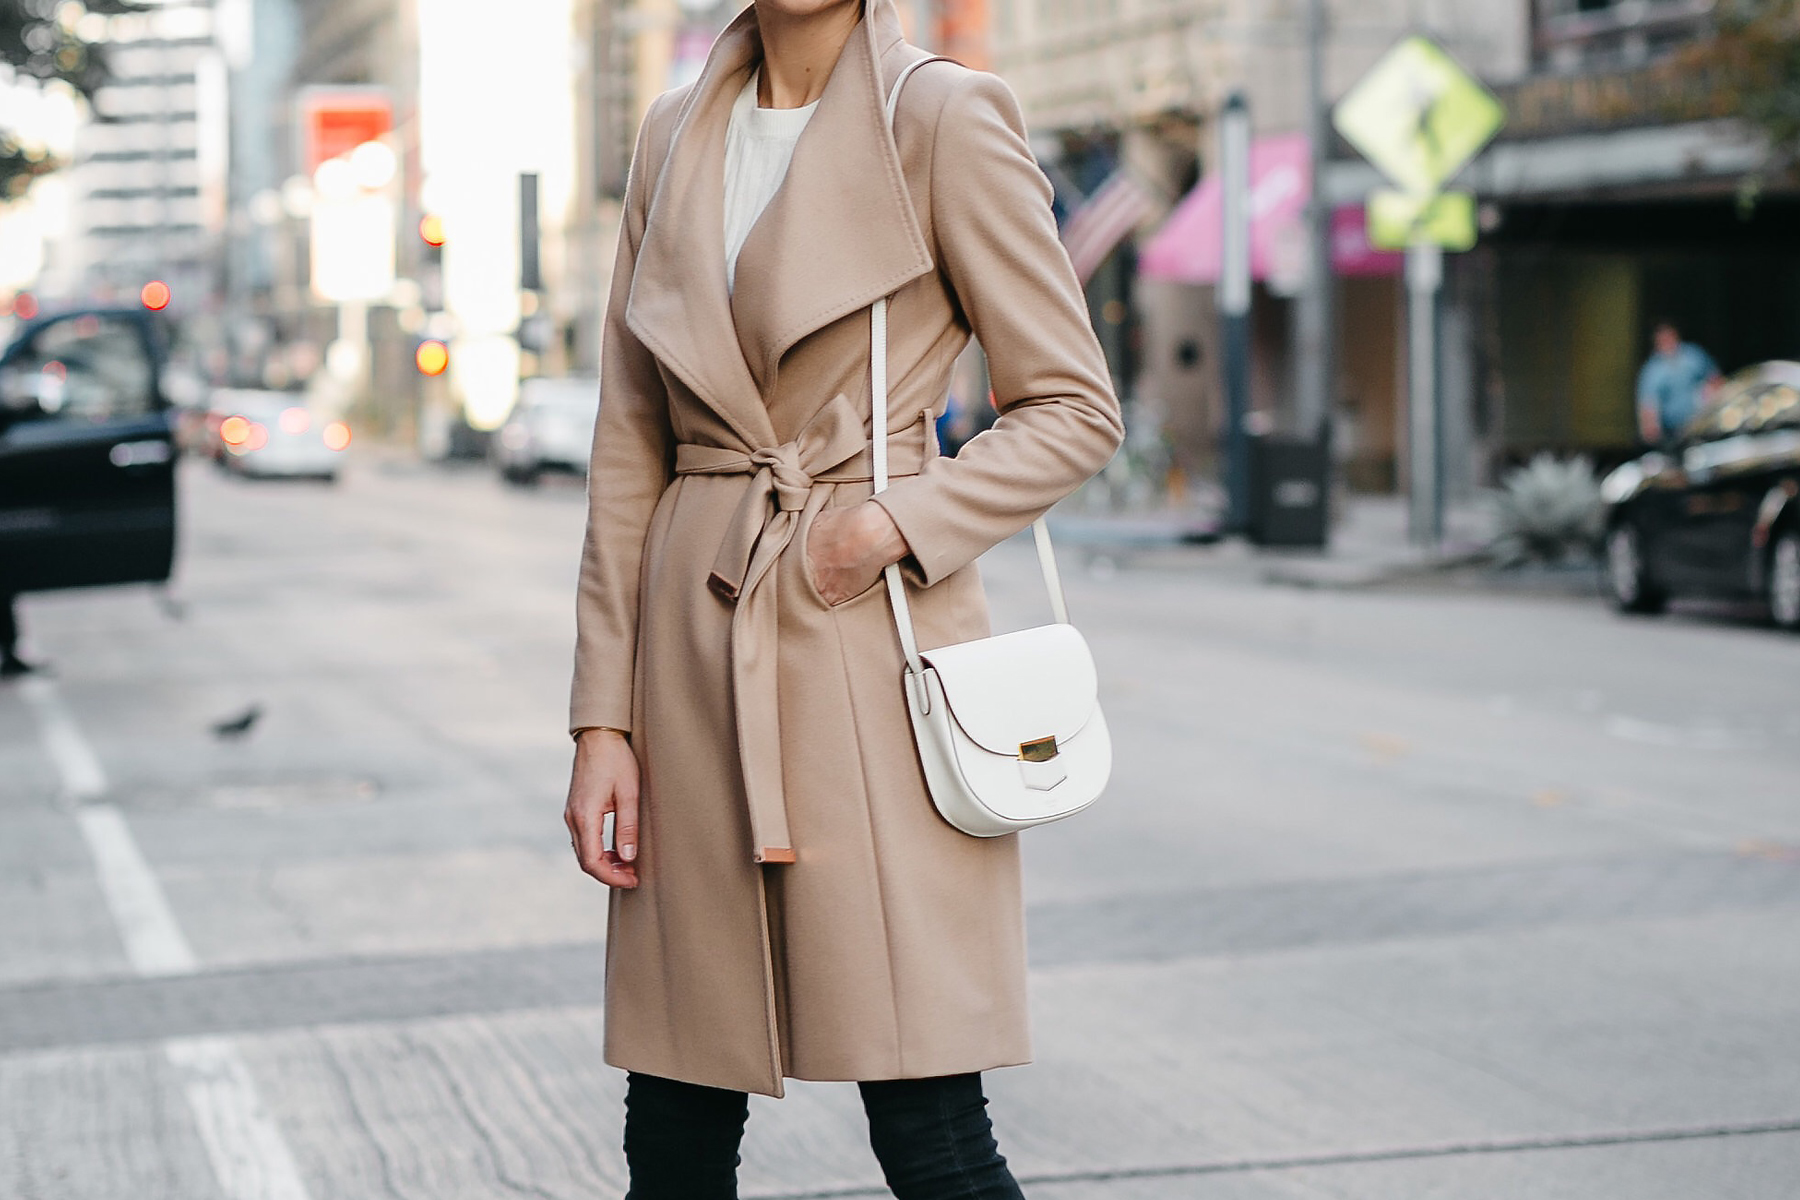 Tan Wrap Coat Celine White Trotteur Handbag Fashion Jackson Dallas Blogger Fashion Blogger Street Style